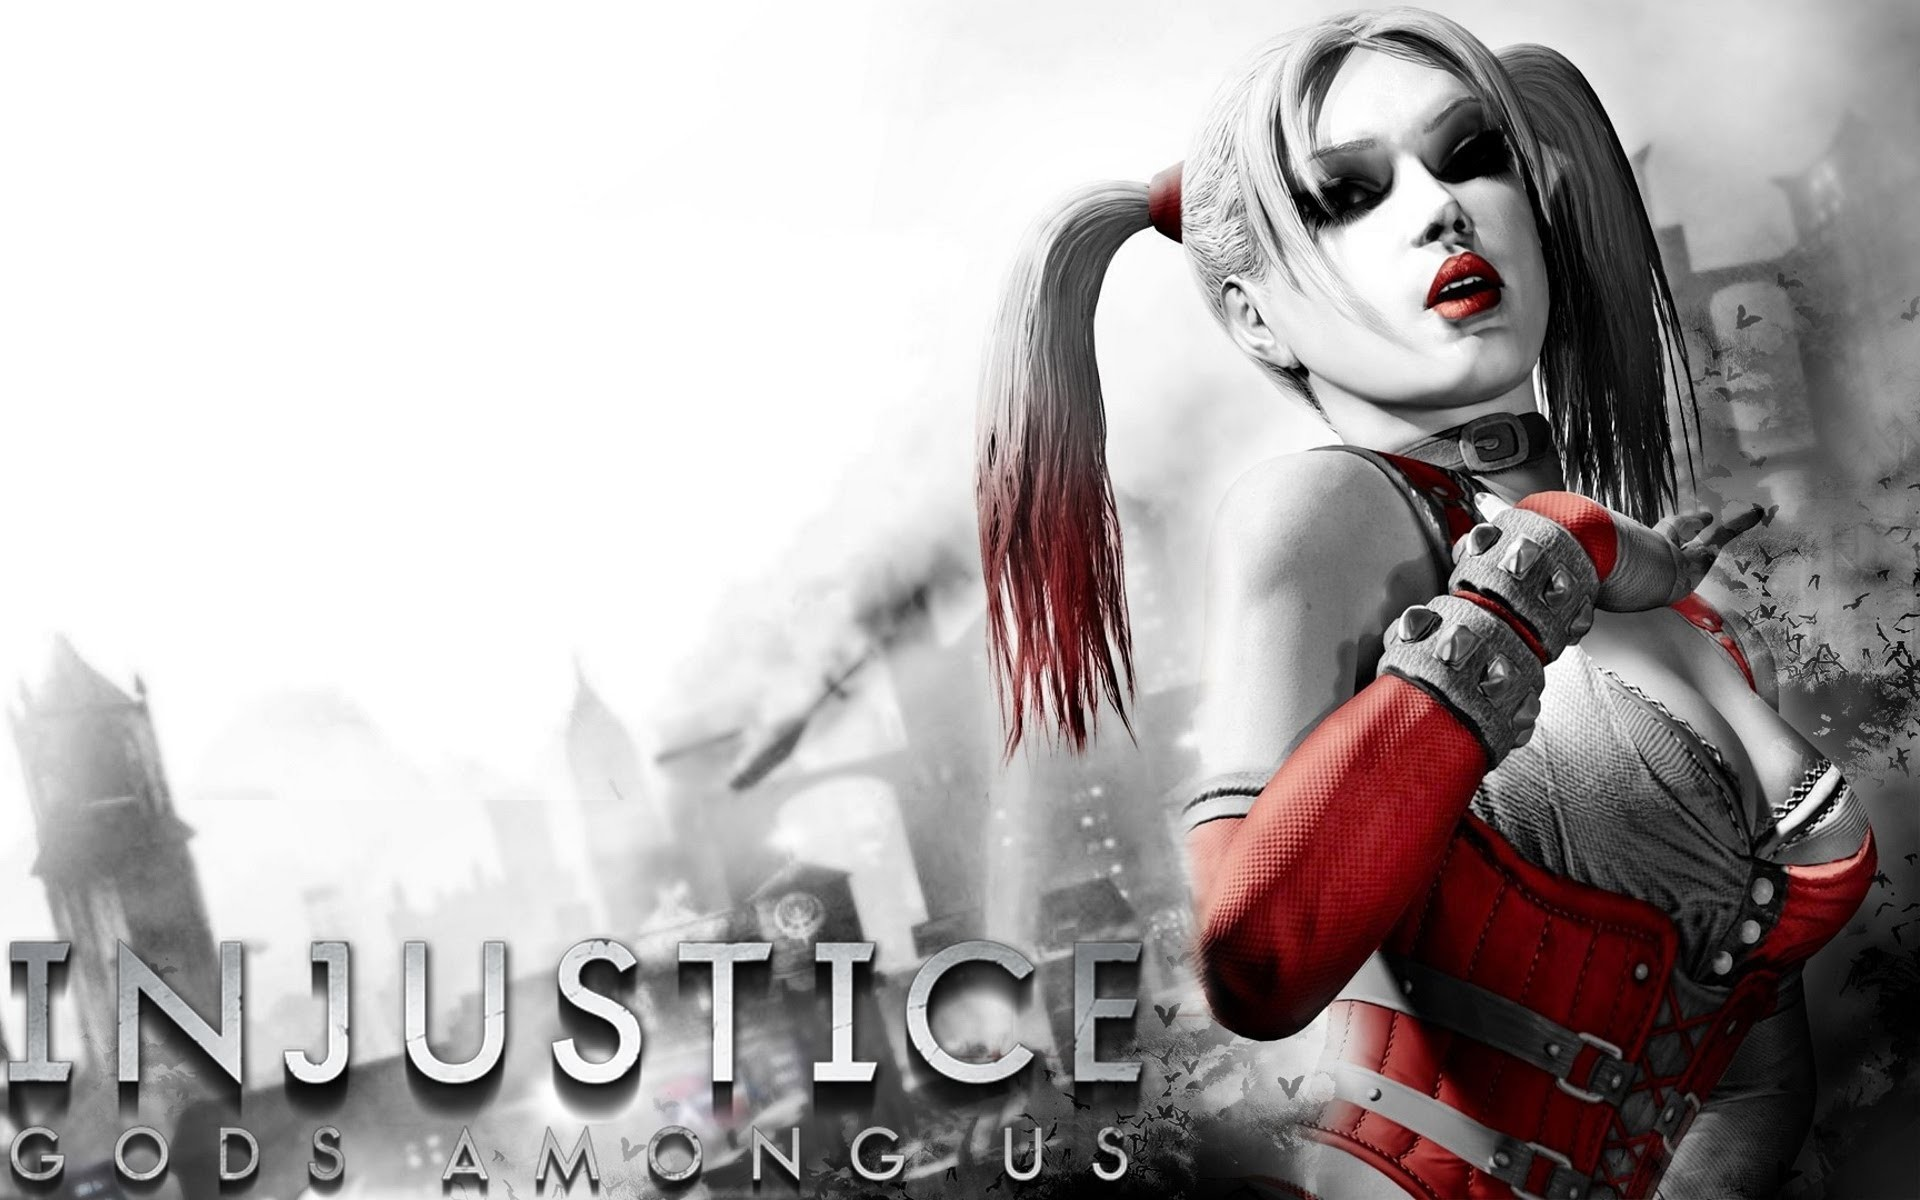 Injustice gods among us wallpapers 85 images 1920x1080 injustice gods among us hd wallpaper 1920x1080 voltagebd Images